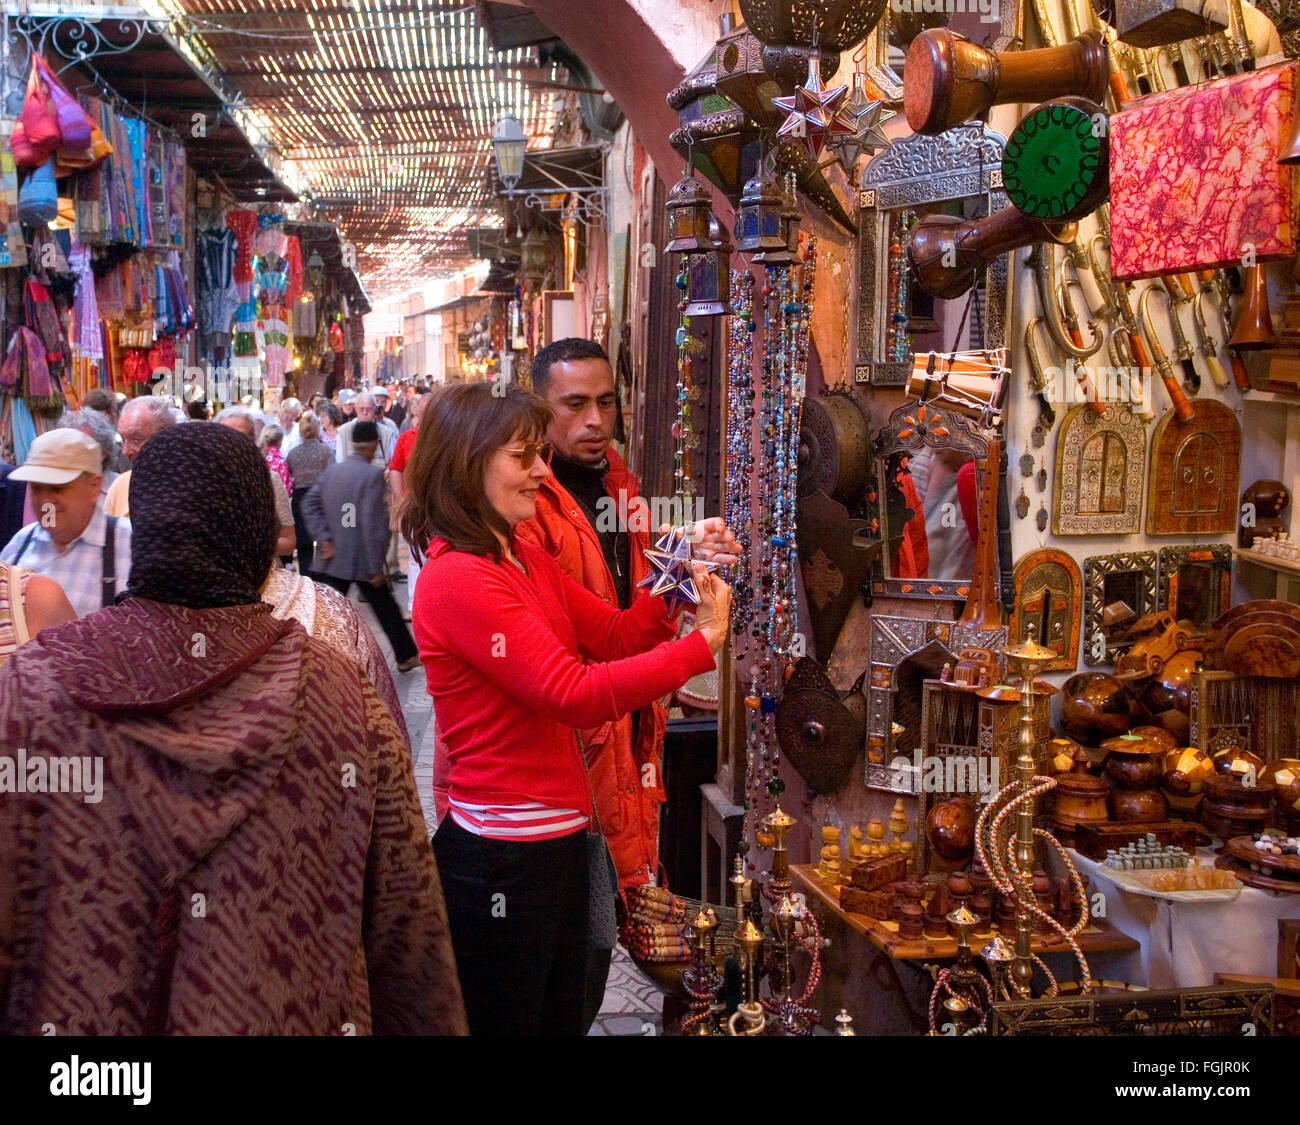 The Souk  Marrakech . Morocco - Stock Image